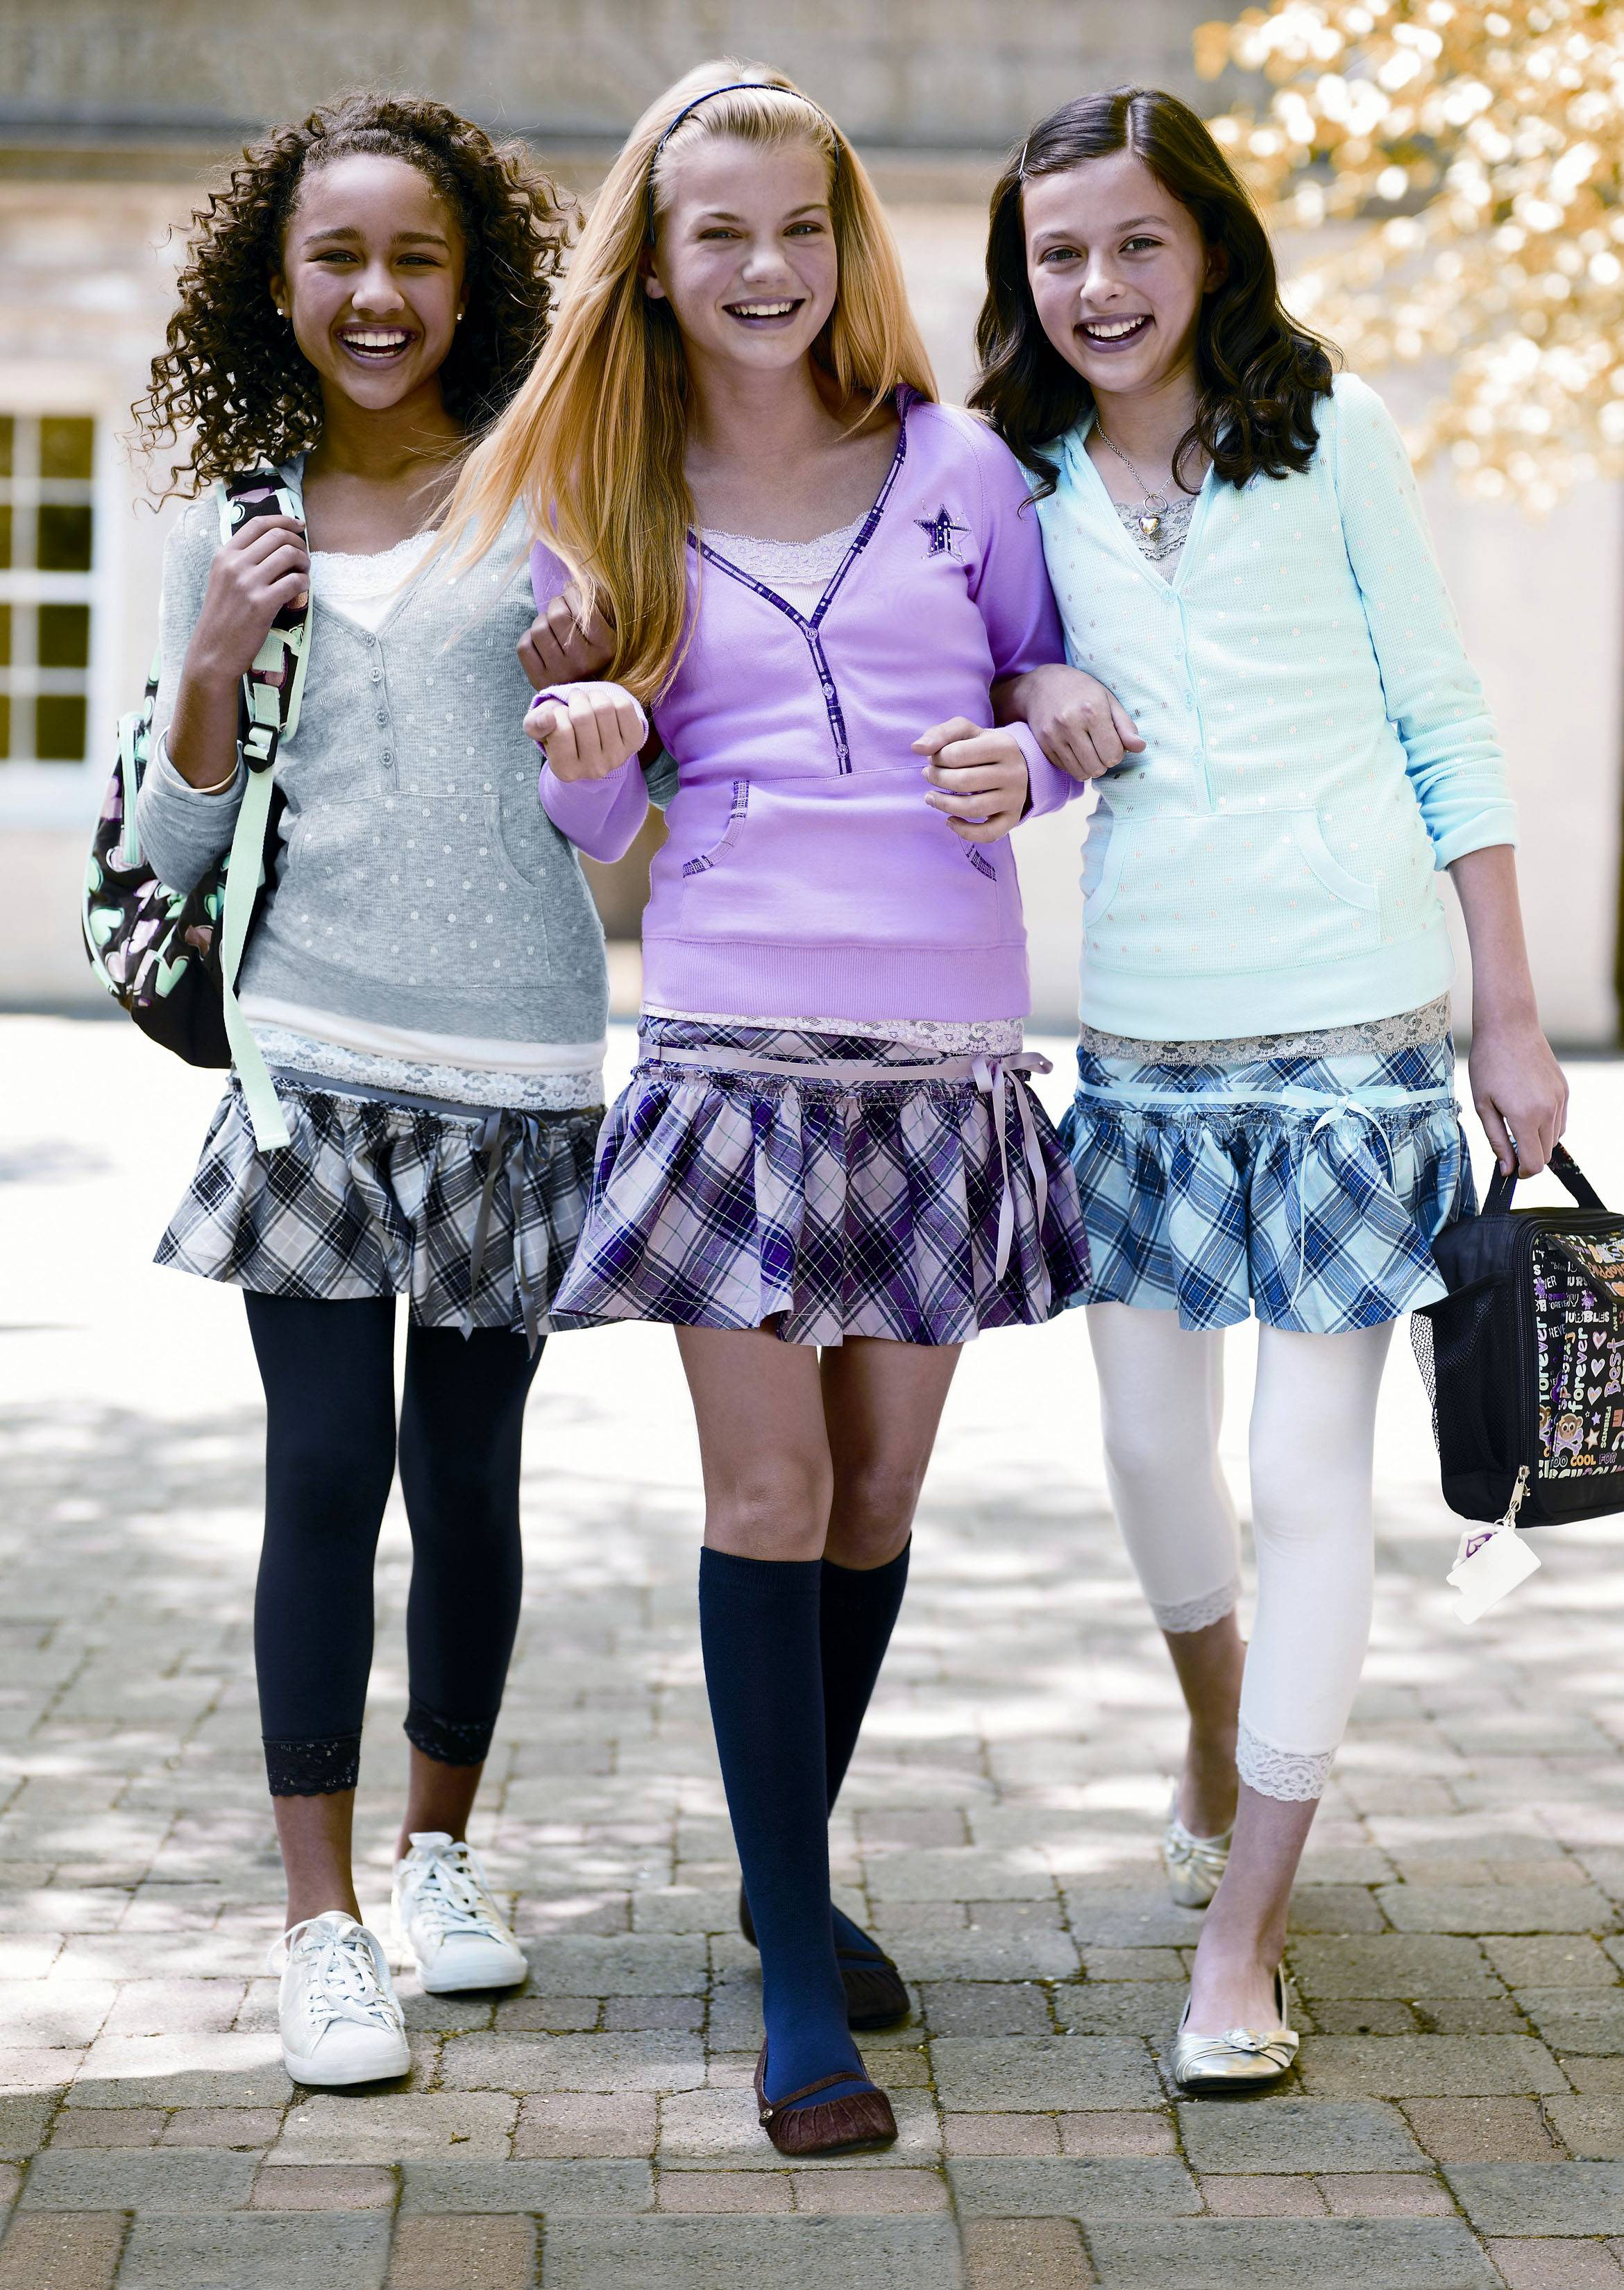 Some schools have banned leggings outright. Others have set limits. Haven Middle School in Evanston took what turned out to be a contentious stand: If you wear leggings, you need to have a shirt or skirt over them that reaches at least down to your fingertips.